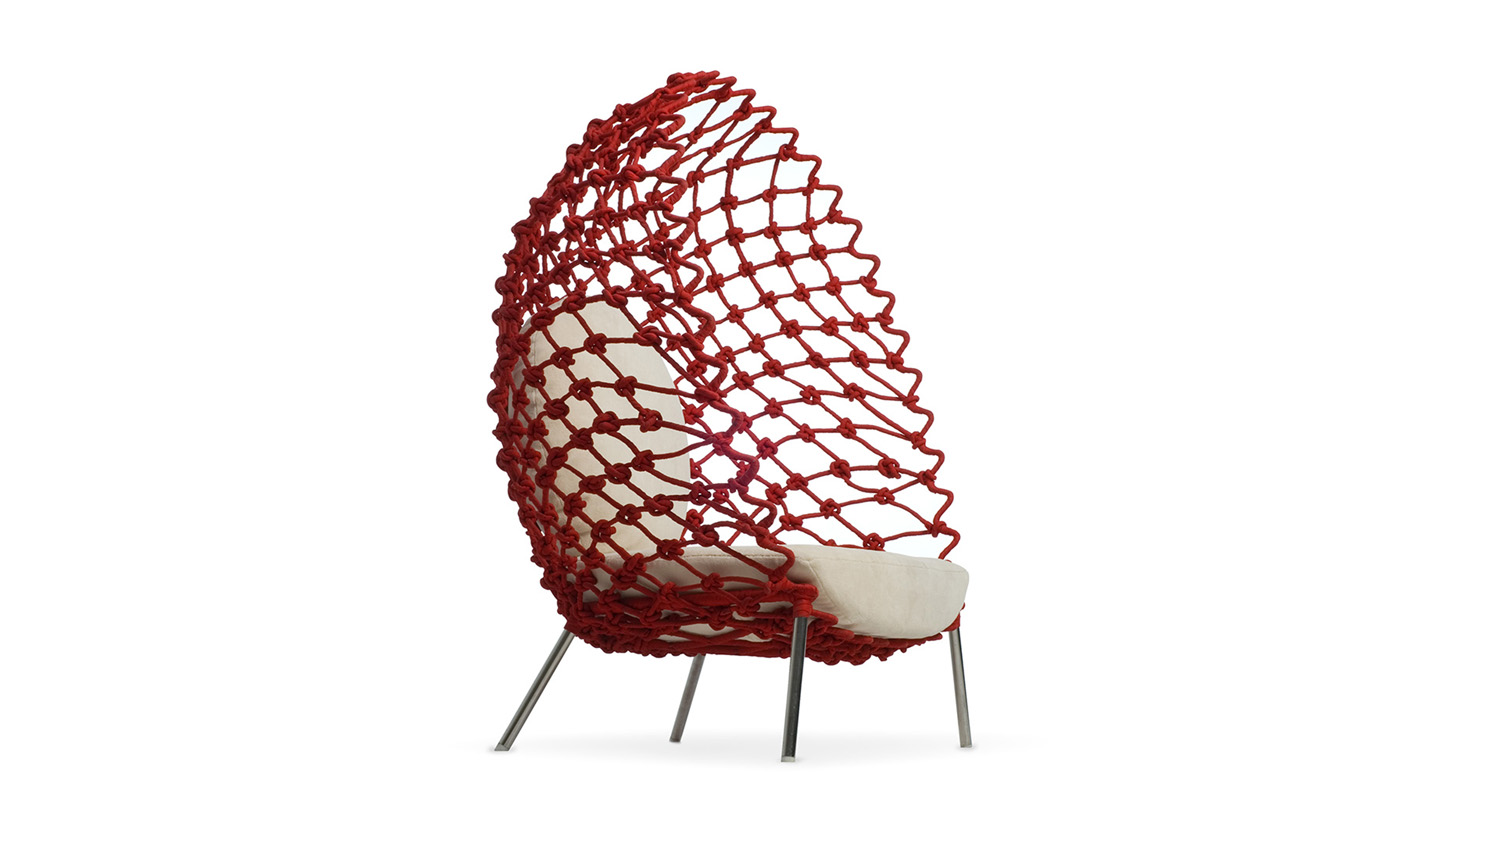 Dragnet lounge chair, kennethcobonpue.com